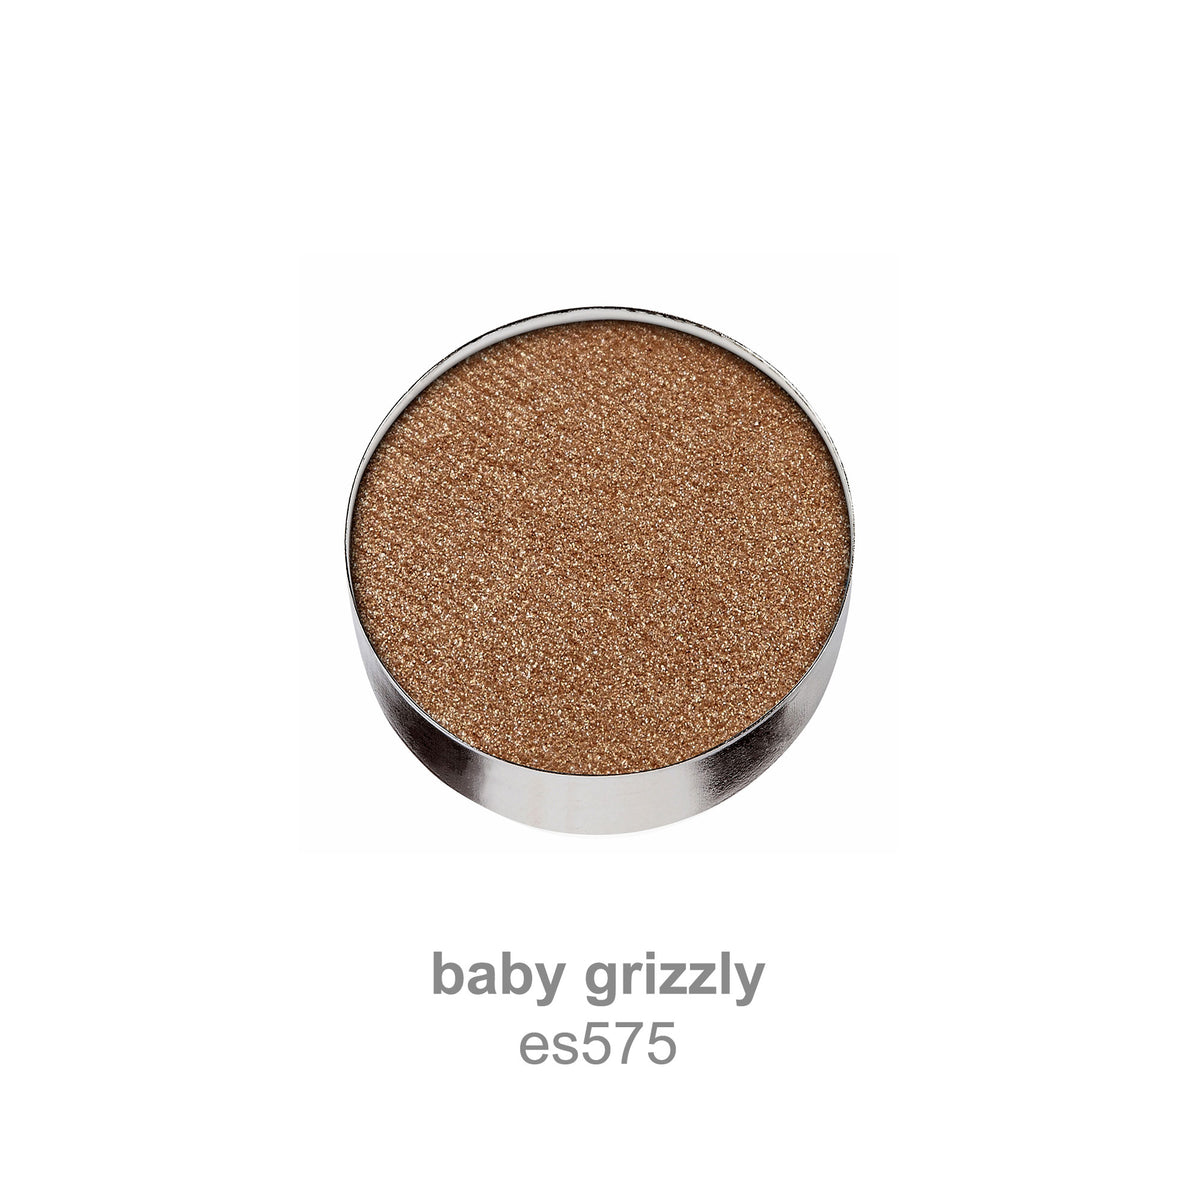 baby grizzly (es575)